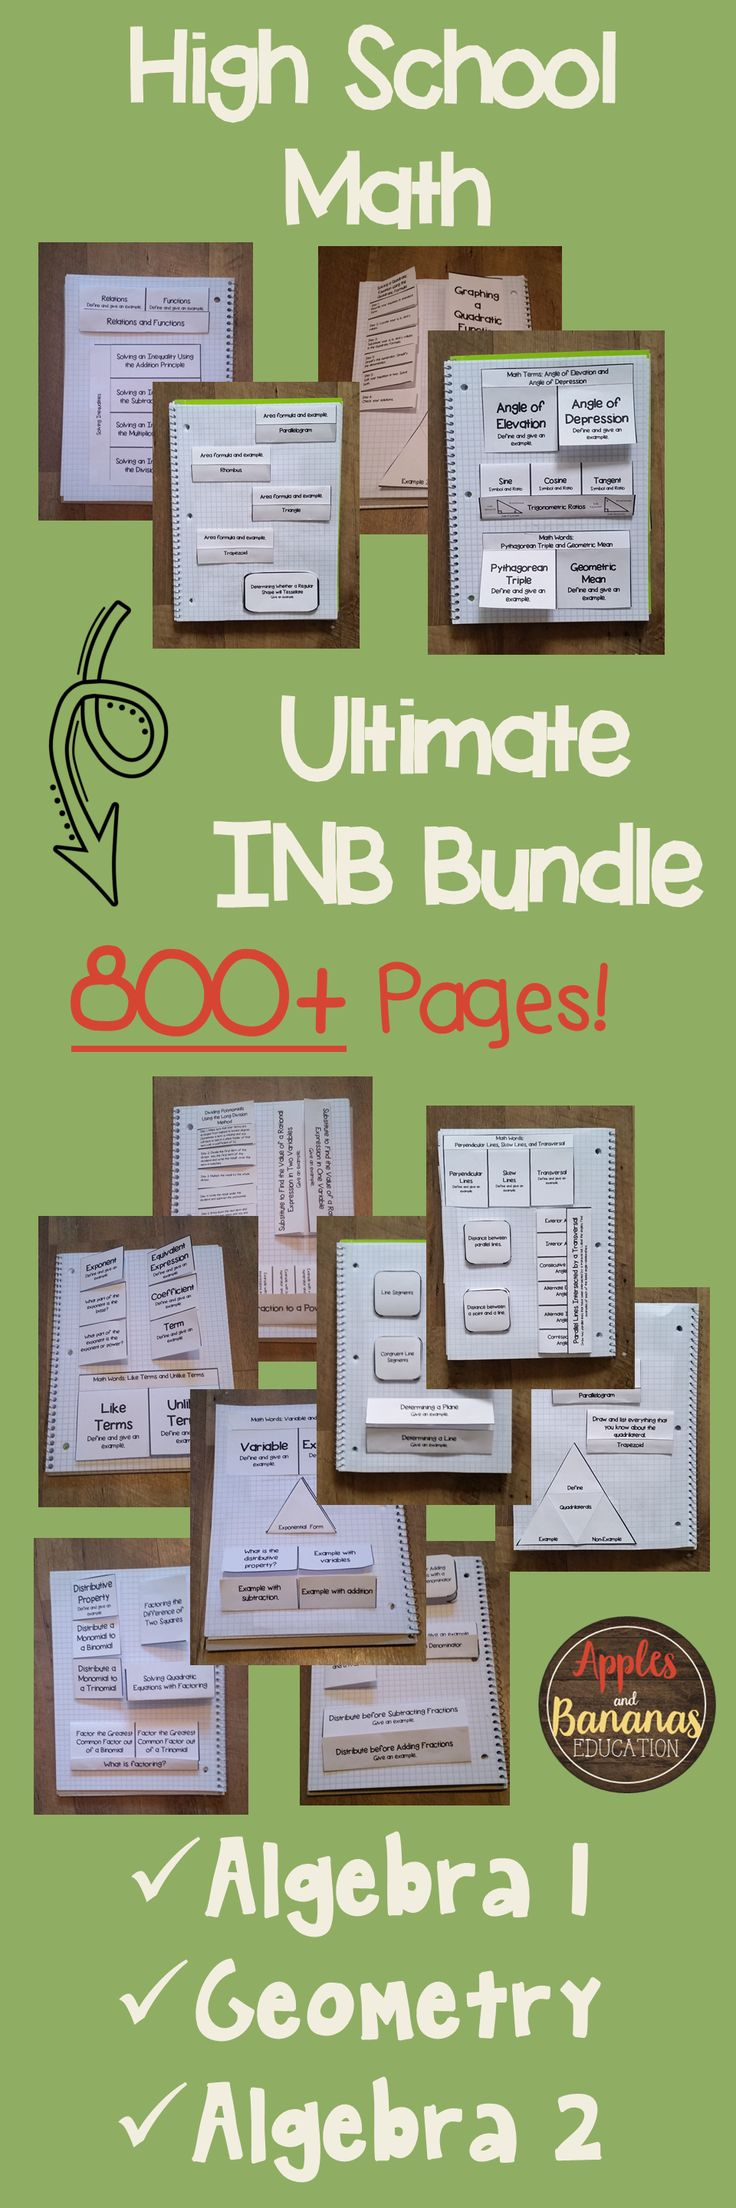 This HUGE (800+ page) bundle contains a full-year of scaffolded notes with keys and INB (interactive notebook activities) for Algebra 1, Algebra 2, and Geometry.  Can also be purchased separately.  Great for reaching all types of learners and supplementing ANY curriculum. #inb #scaffoldednotes #highschoolmath